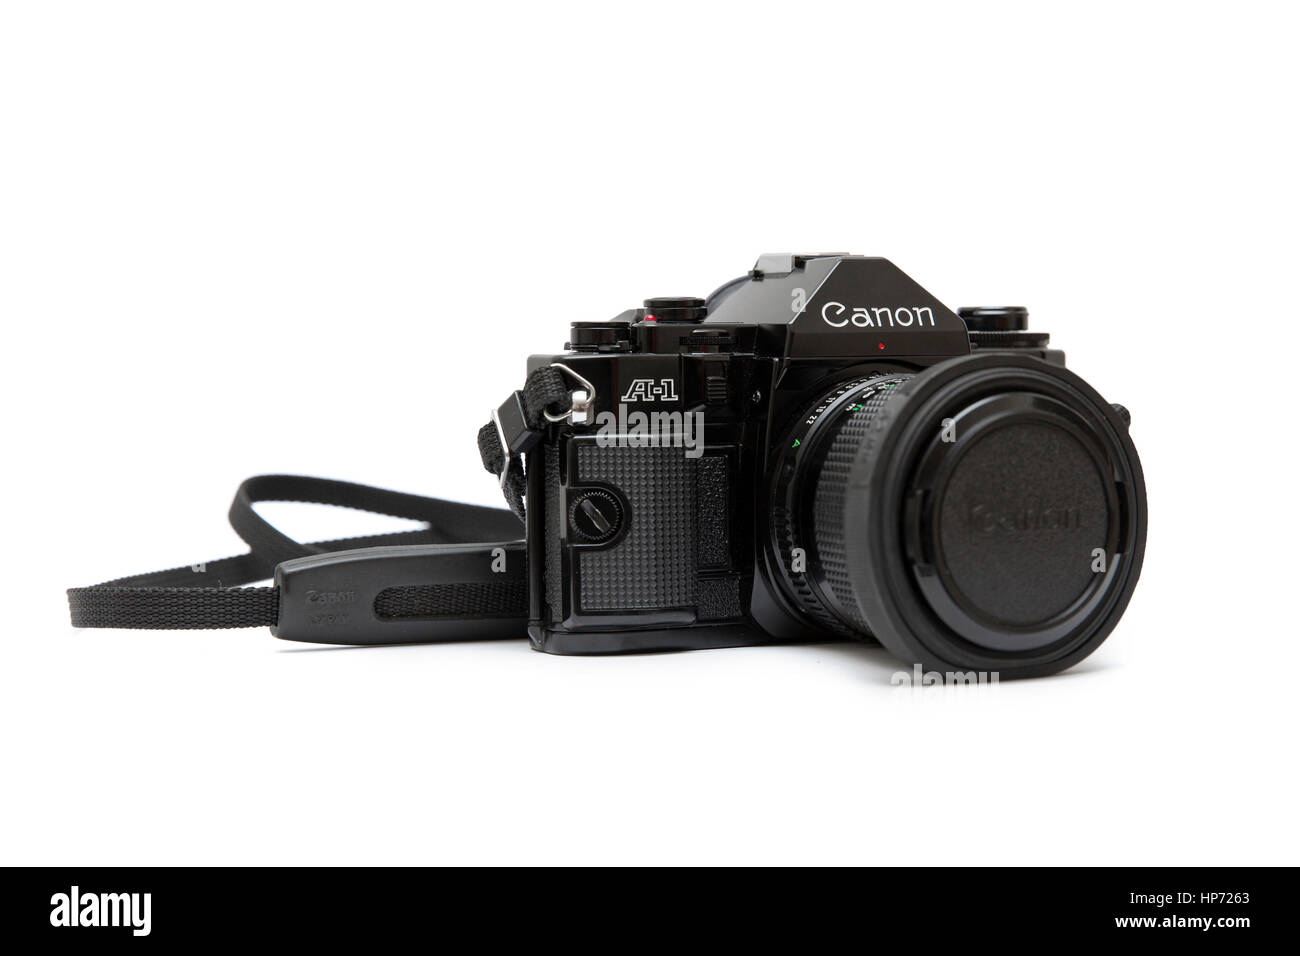 Canon A-1 is advanced level single lens reflex (SLR) 35 mm film camera for use with interchangeable lenses. - Stock Image